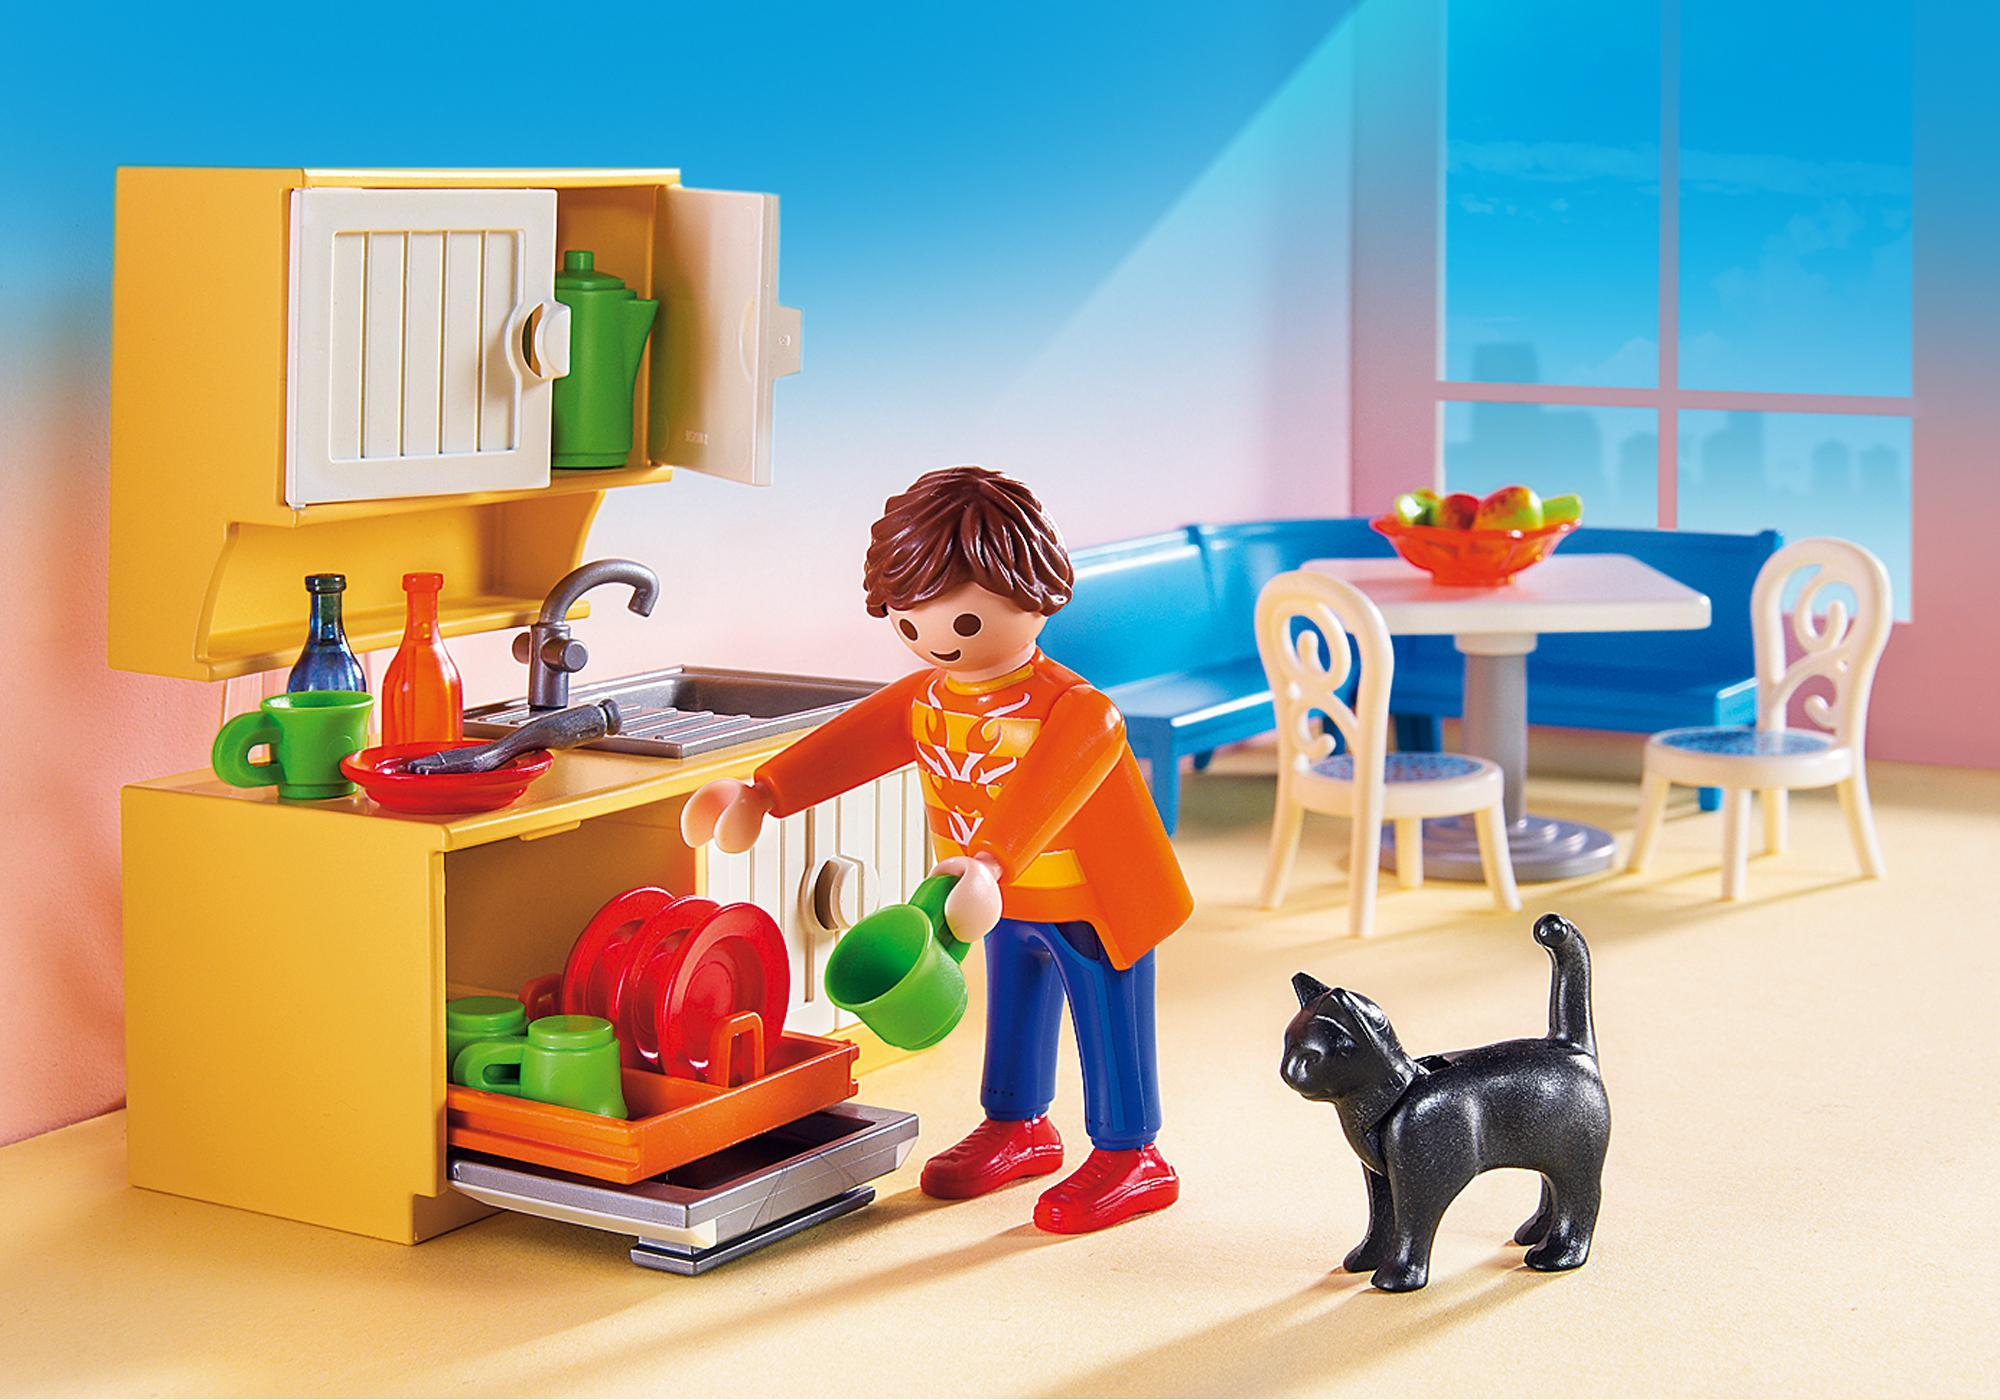 http://media.playmobil.com/i/playmobil/5336_product_extra1/Country Kitchen